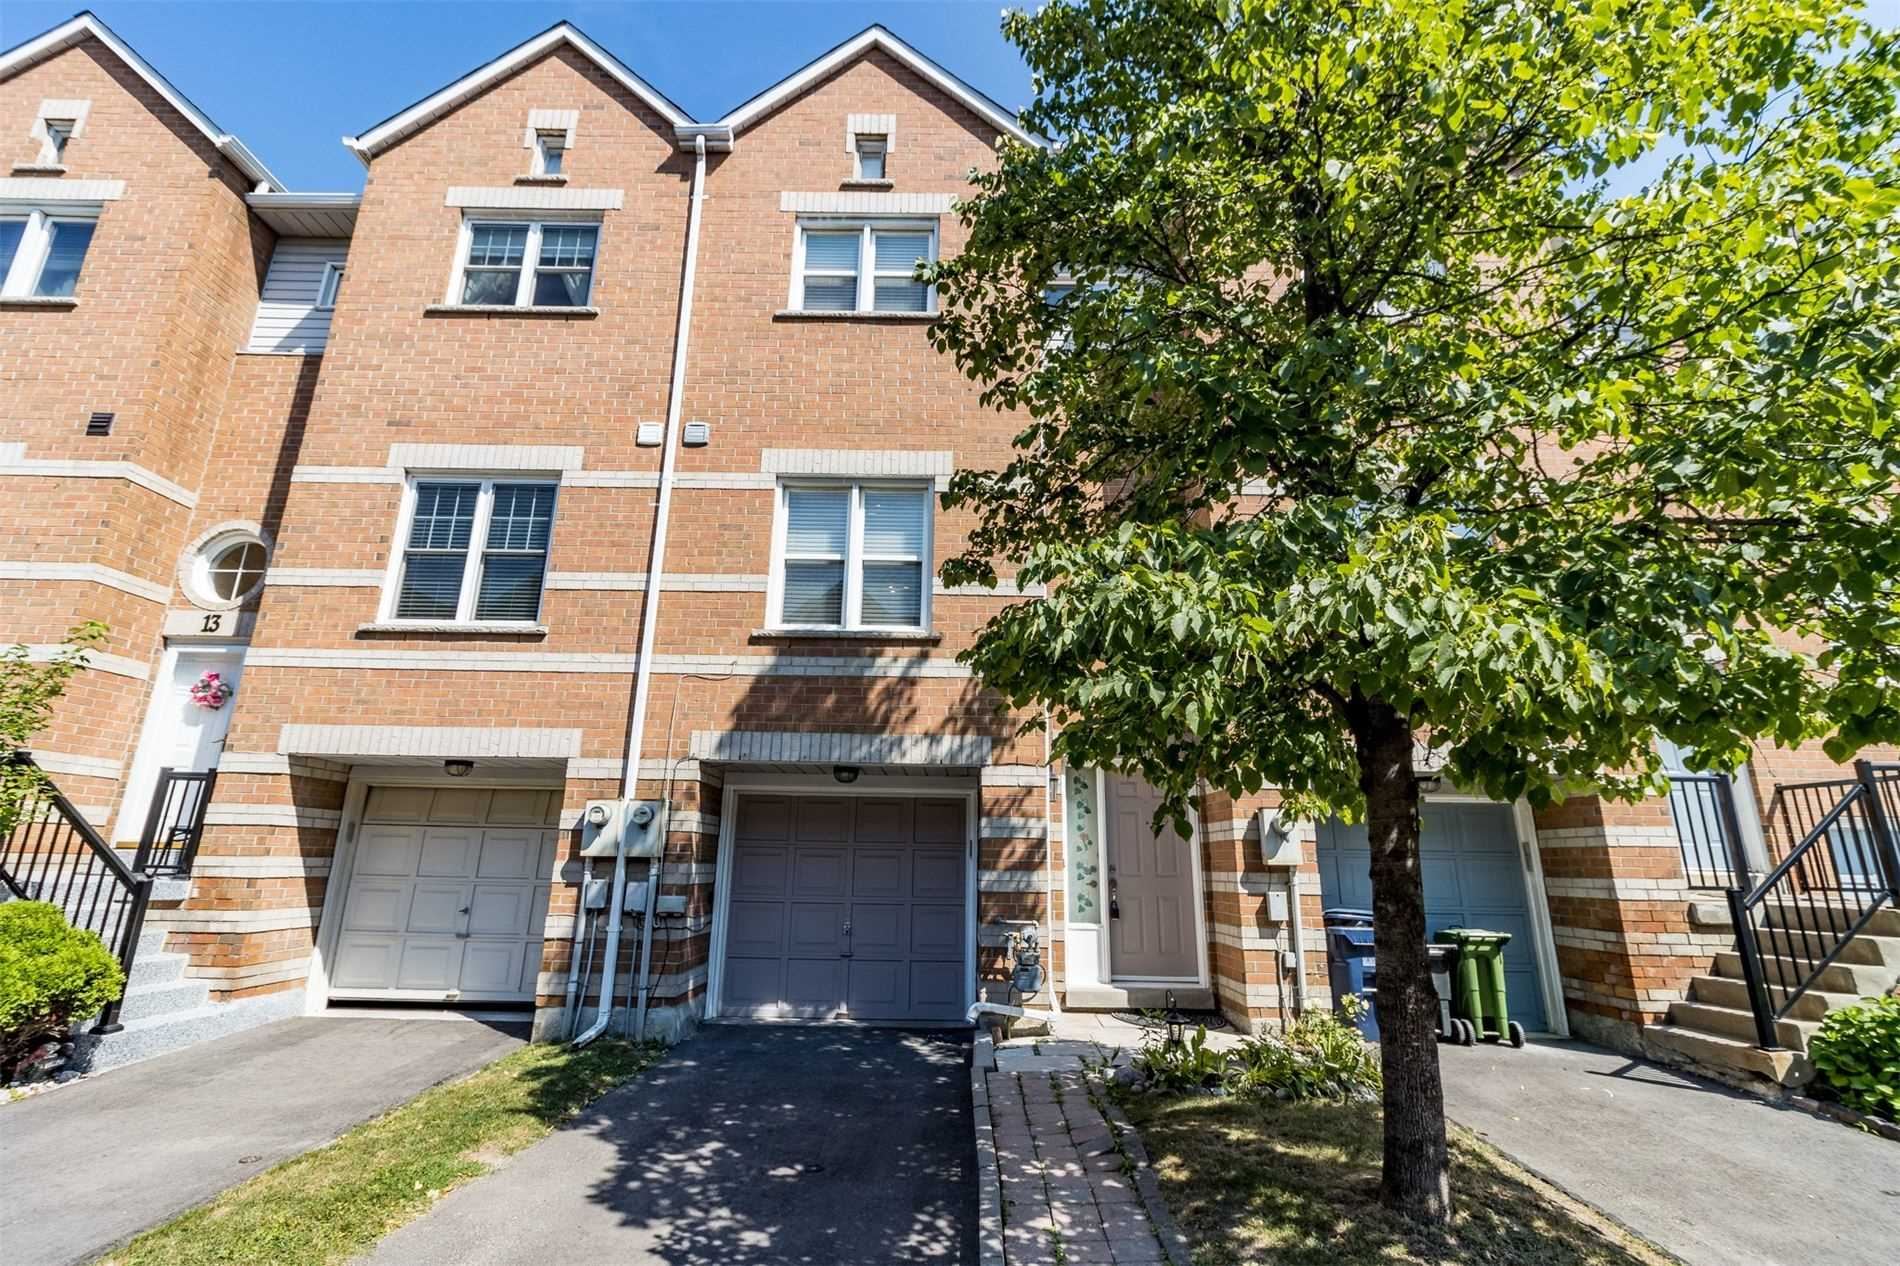 630 Evans Avenue Townhomes - 630 Evans Ave